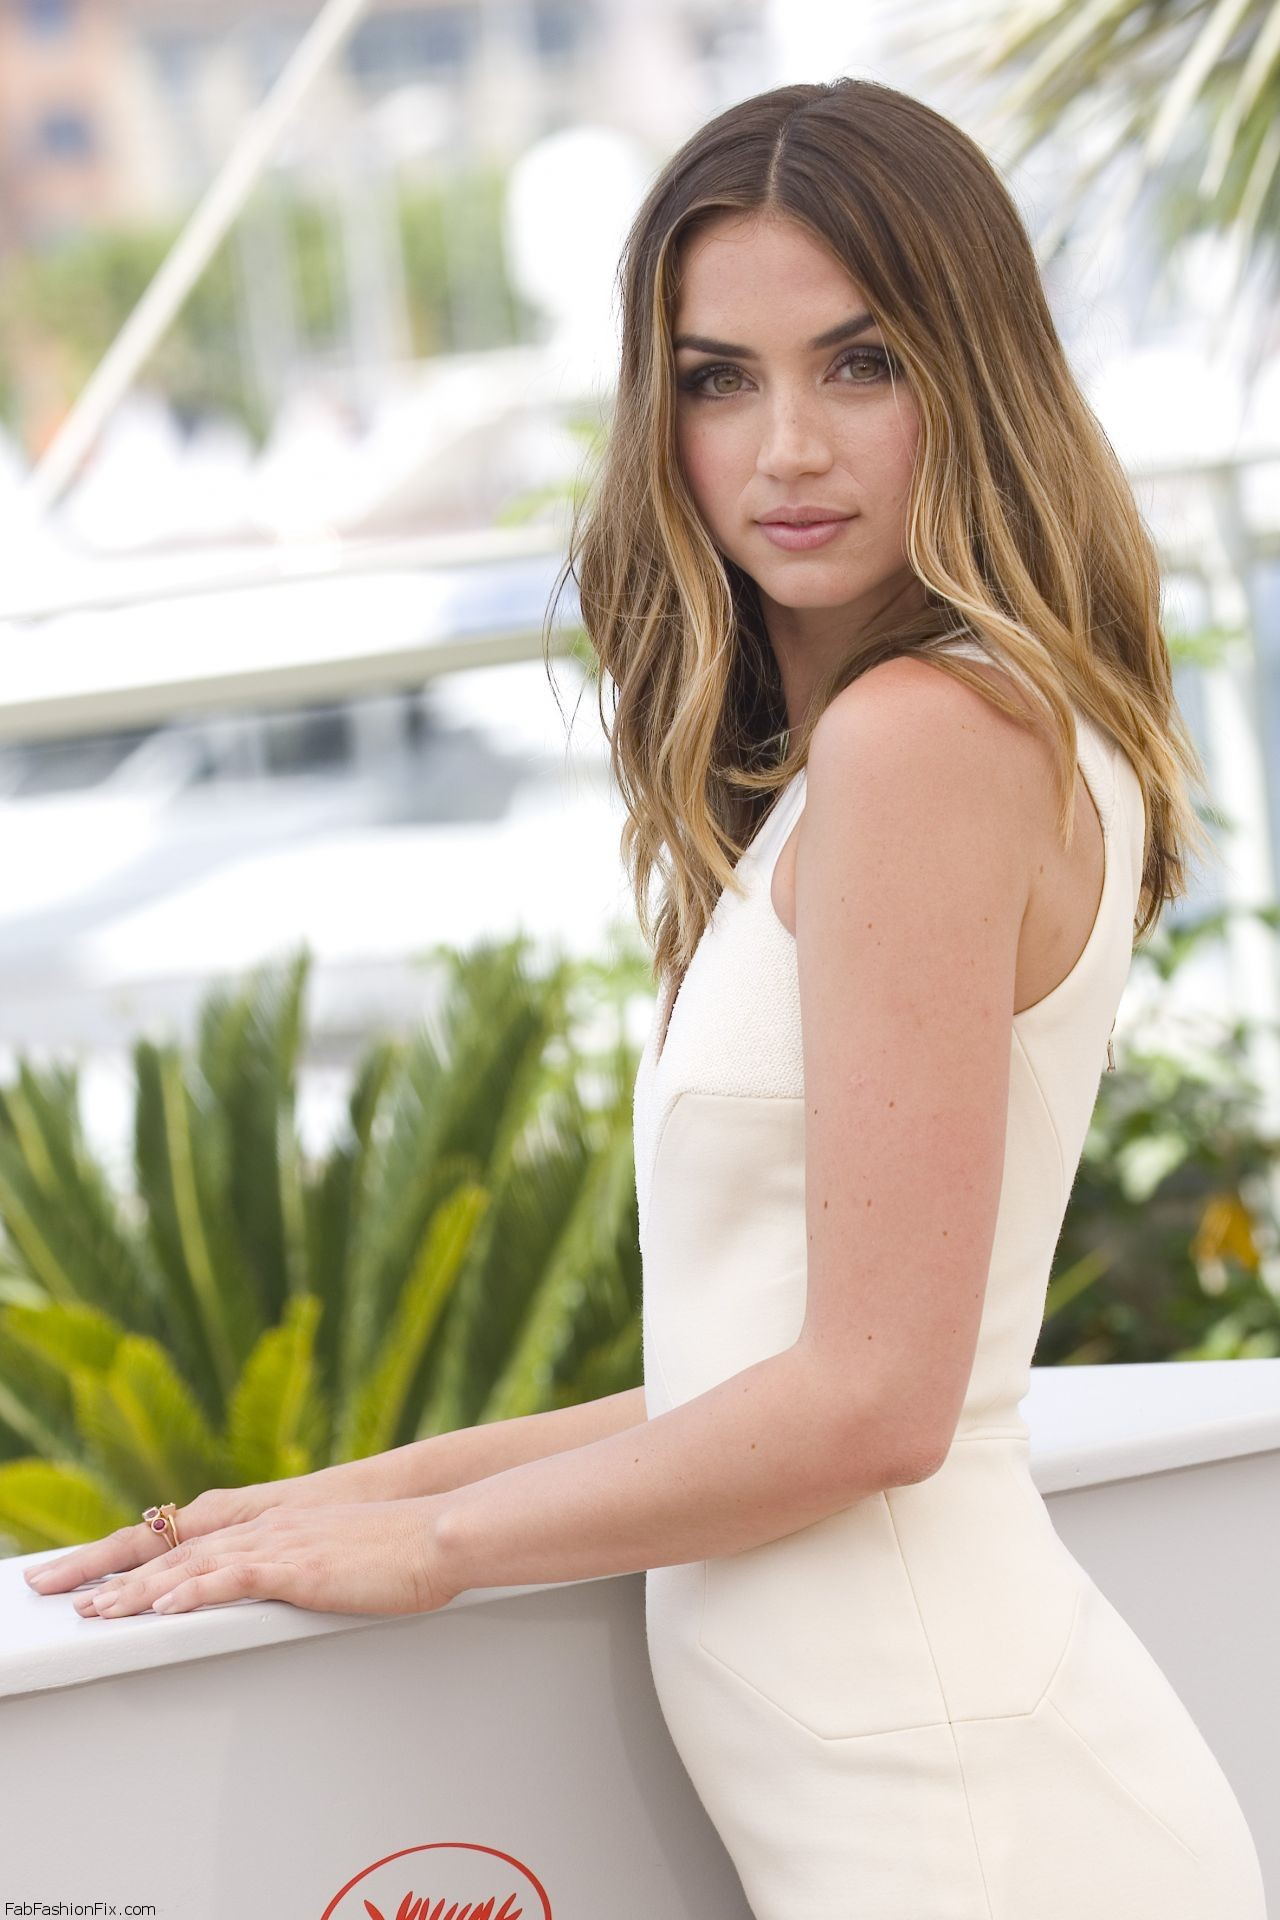 ana-de-armas-hands-of-stone-photocall-at-cannes-film-festival-5-16-2016-6